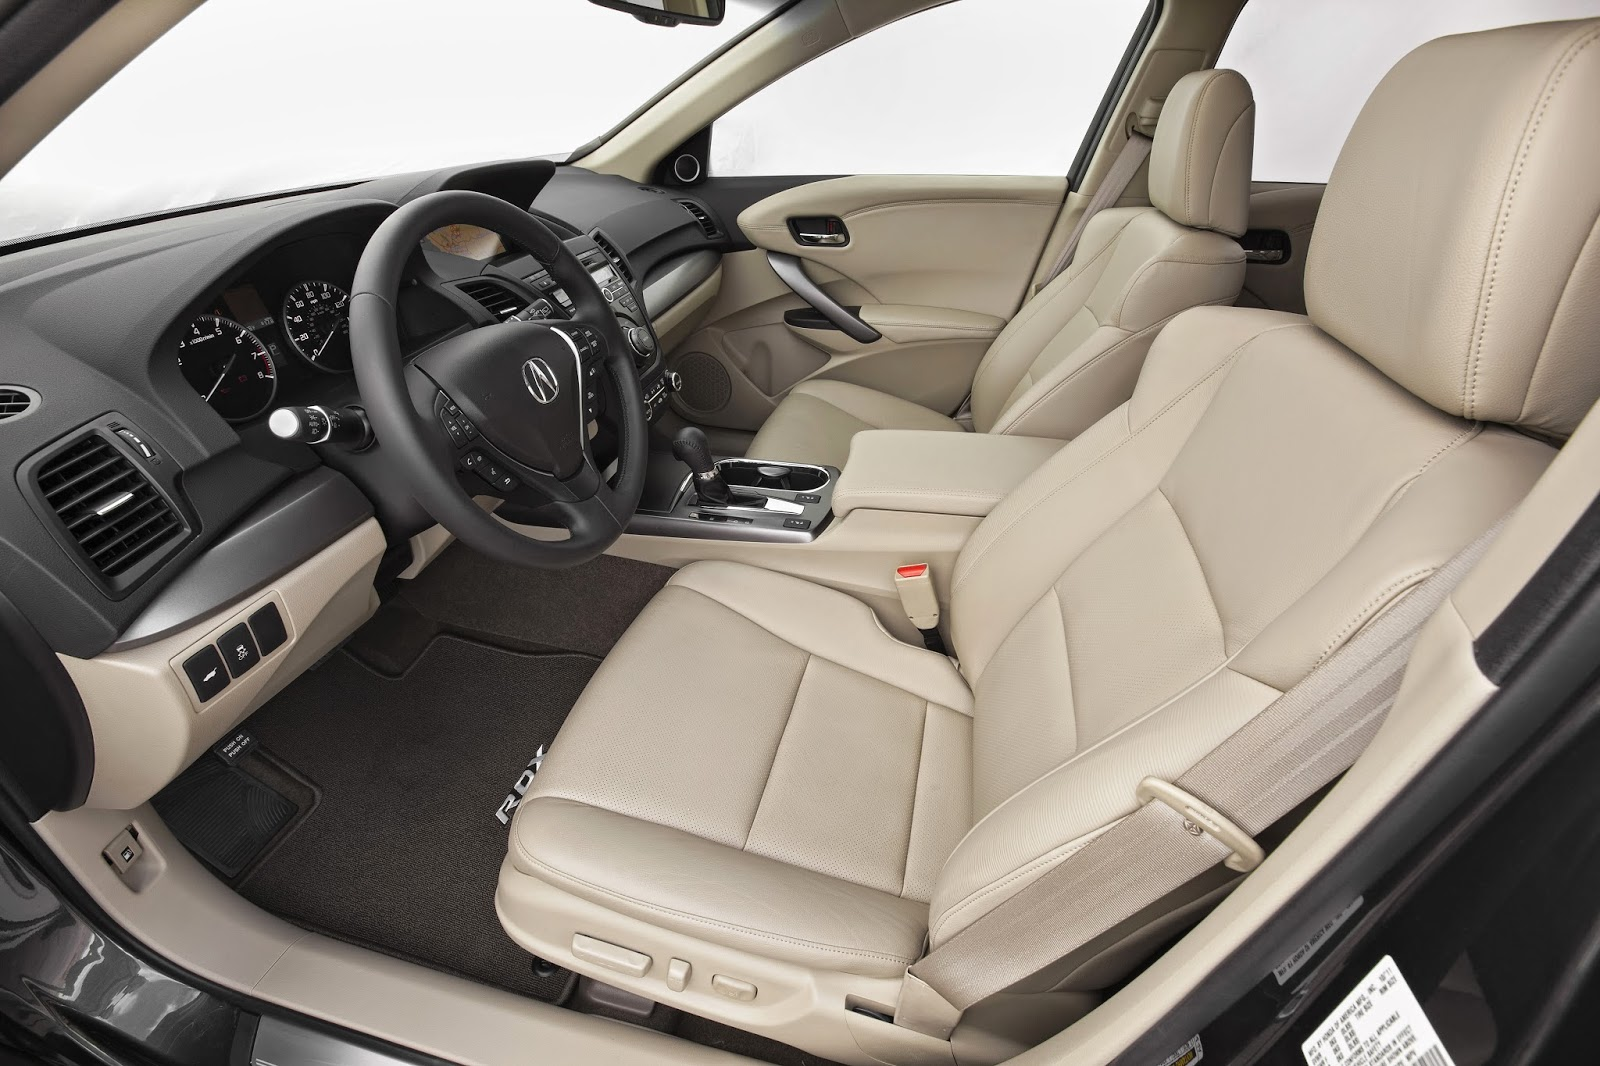 Interior view of 2014 Acura RDX